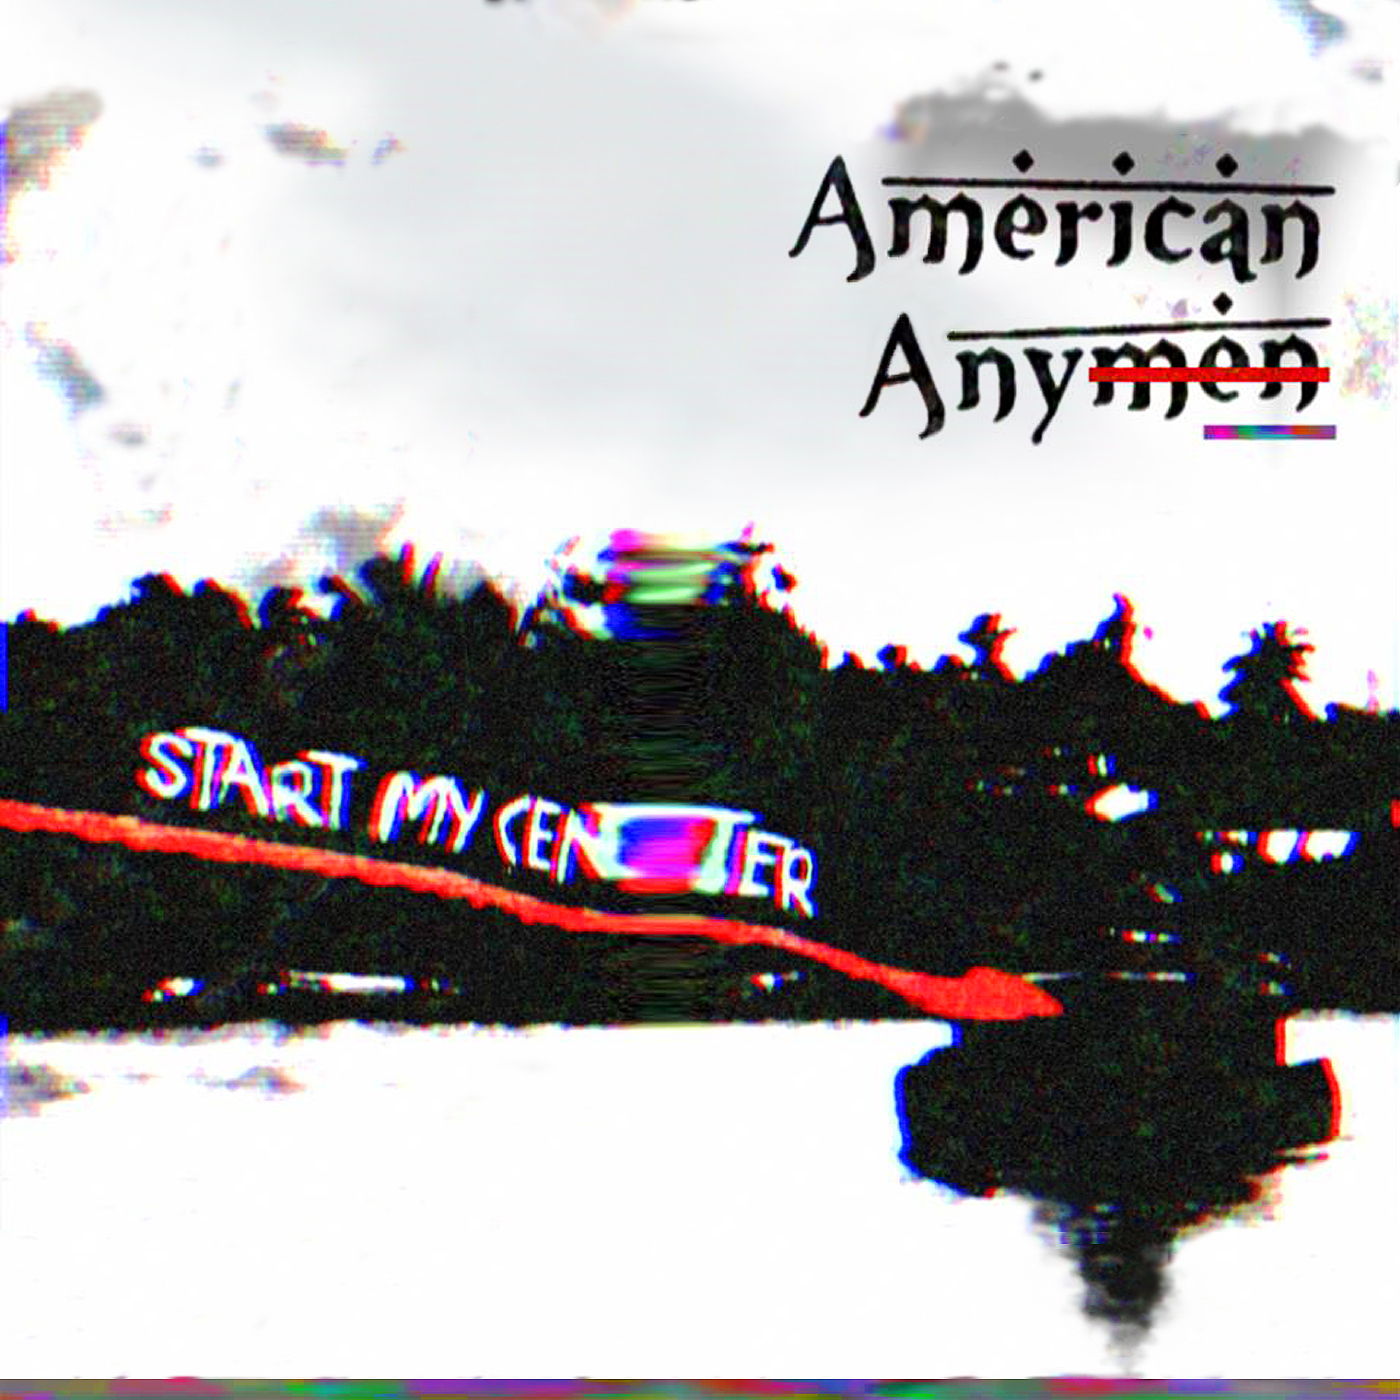 """STEREO EMBERS EXCLUSIVE ALBUM PREMIER: American Anymen's """"Start My Center"""""""